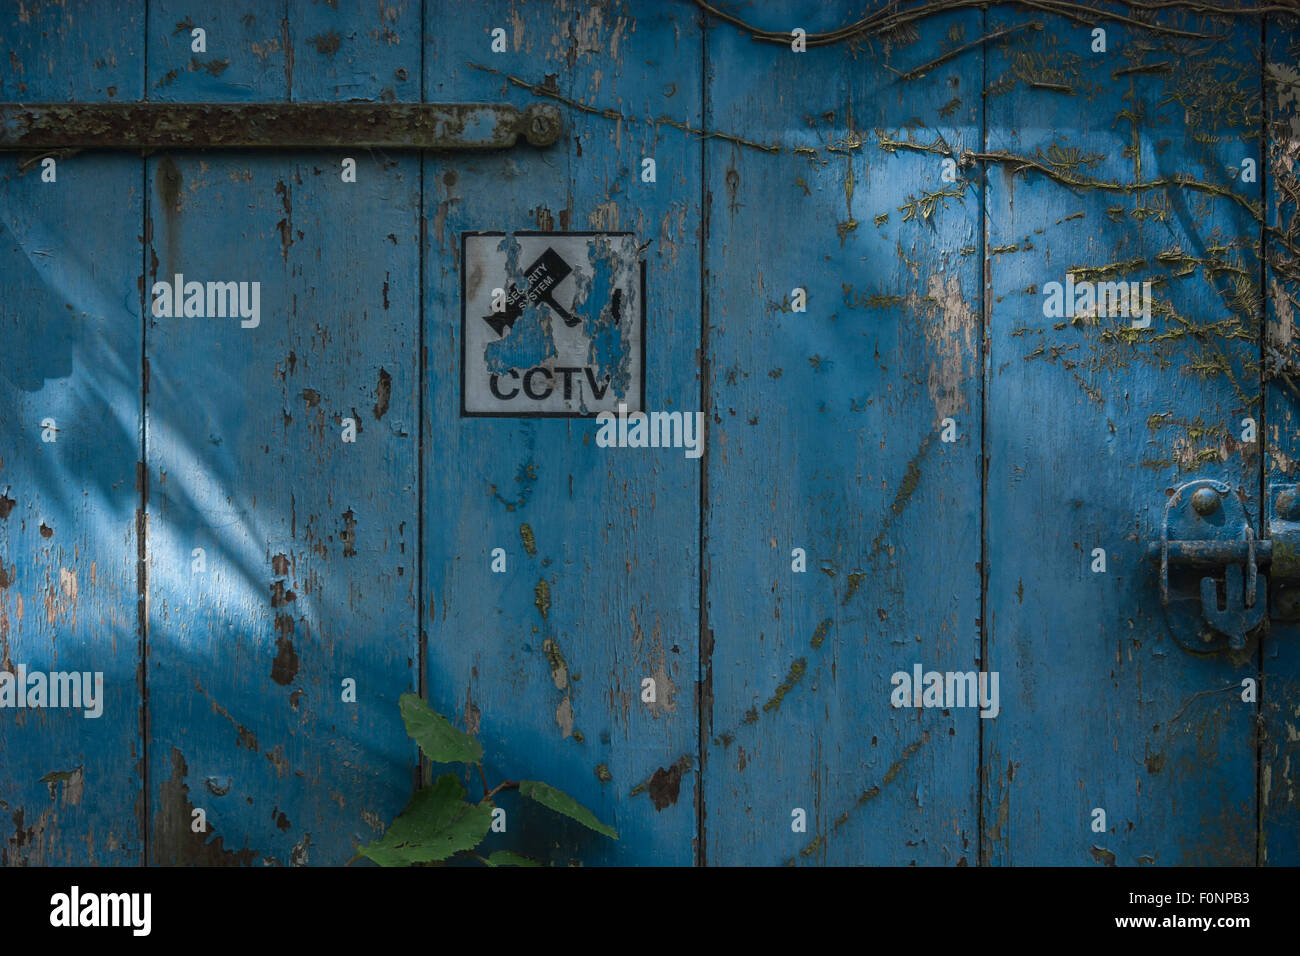 CCTV warning sign pictogram on faded old door. Stock Photo